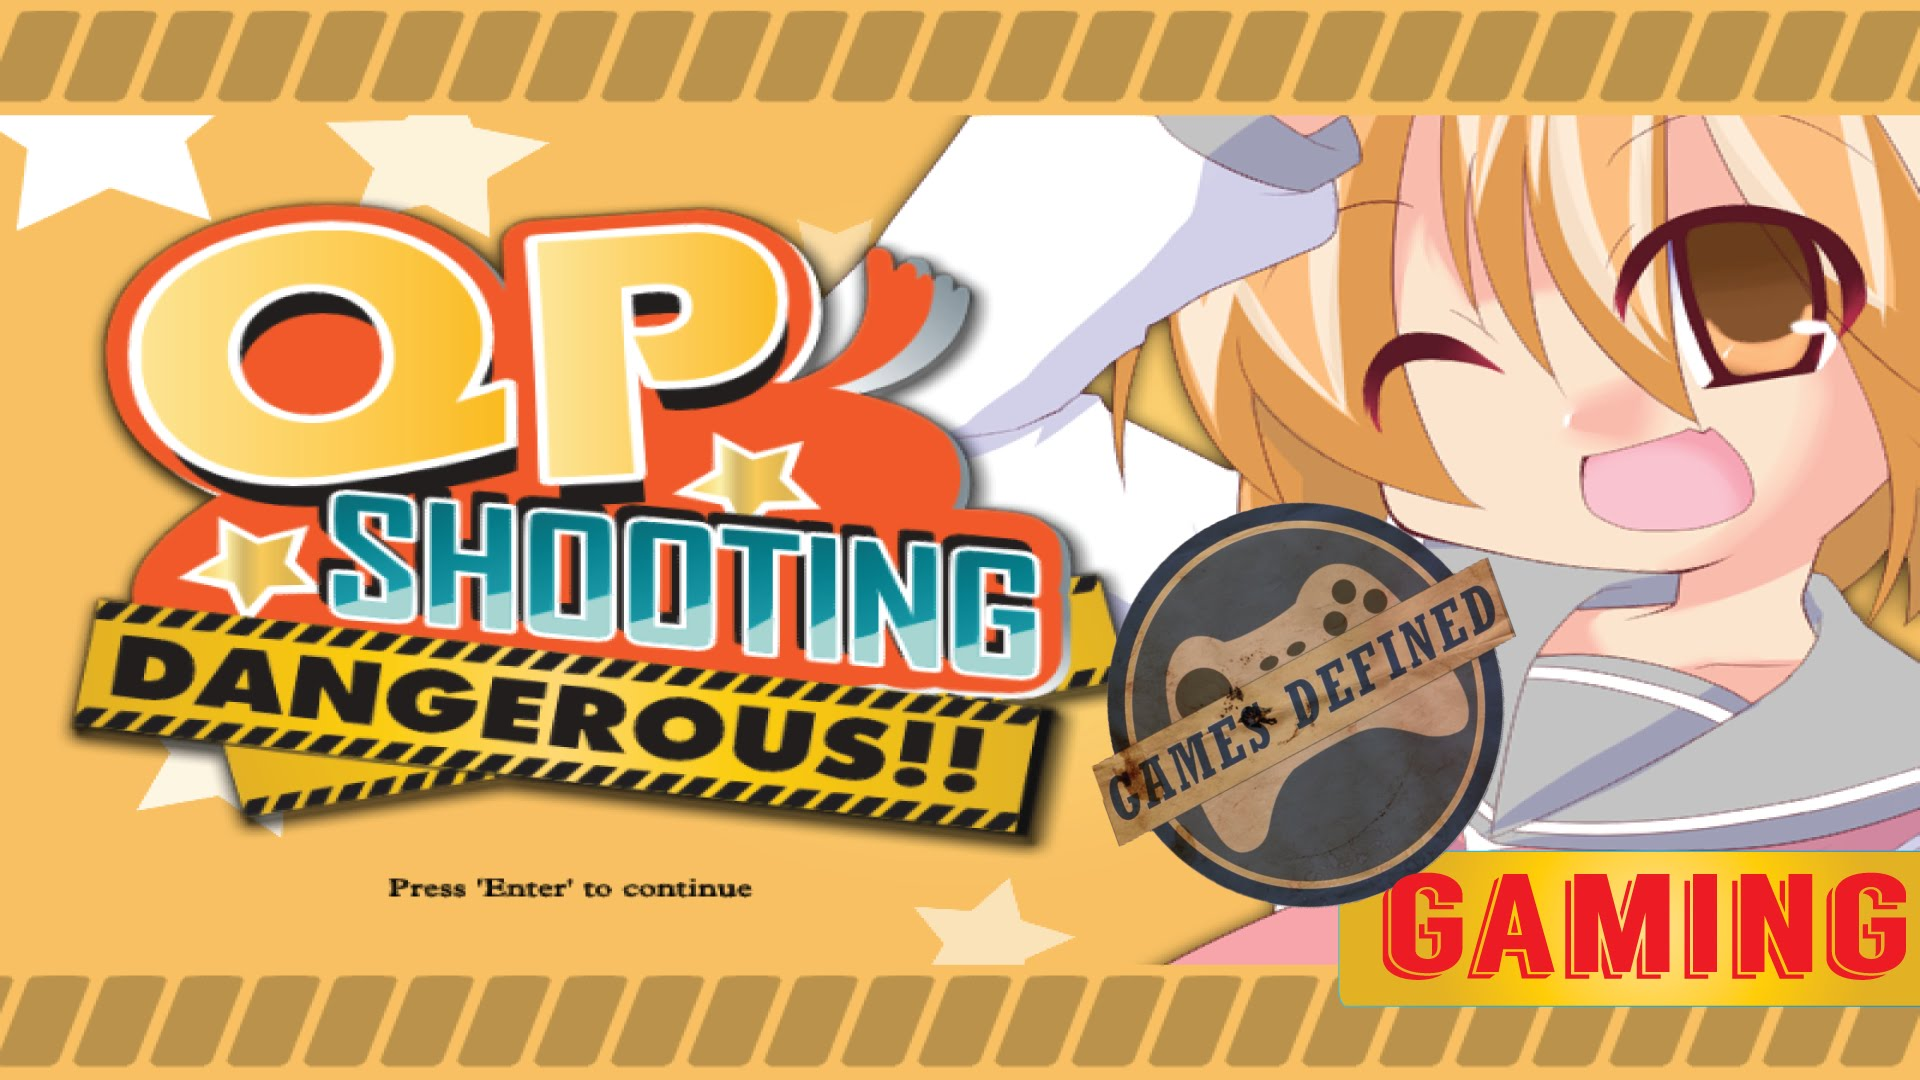 QP Shooting - Dangerous!!  (Steam Gift / ROW) HB link